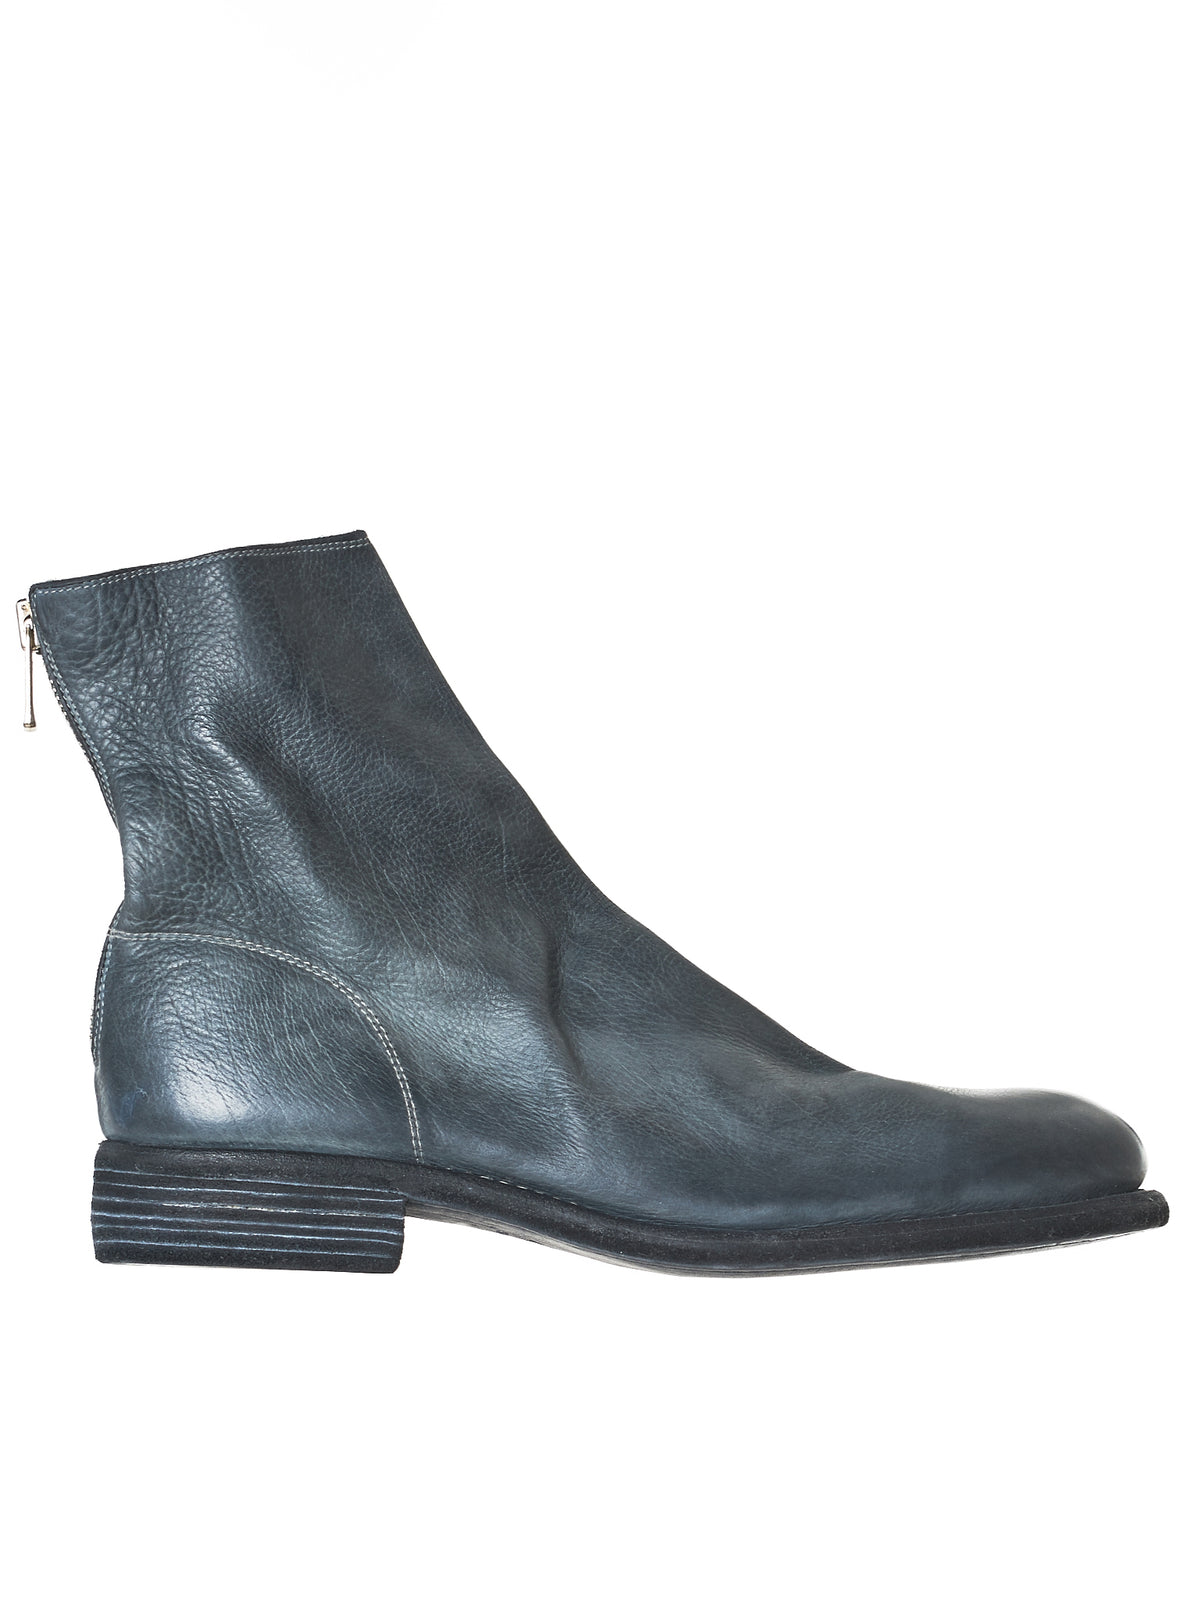 Issey Miyake Men Black Leather Chelsea Boots gCT40